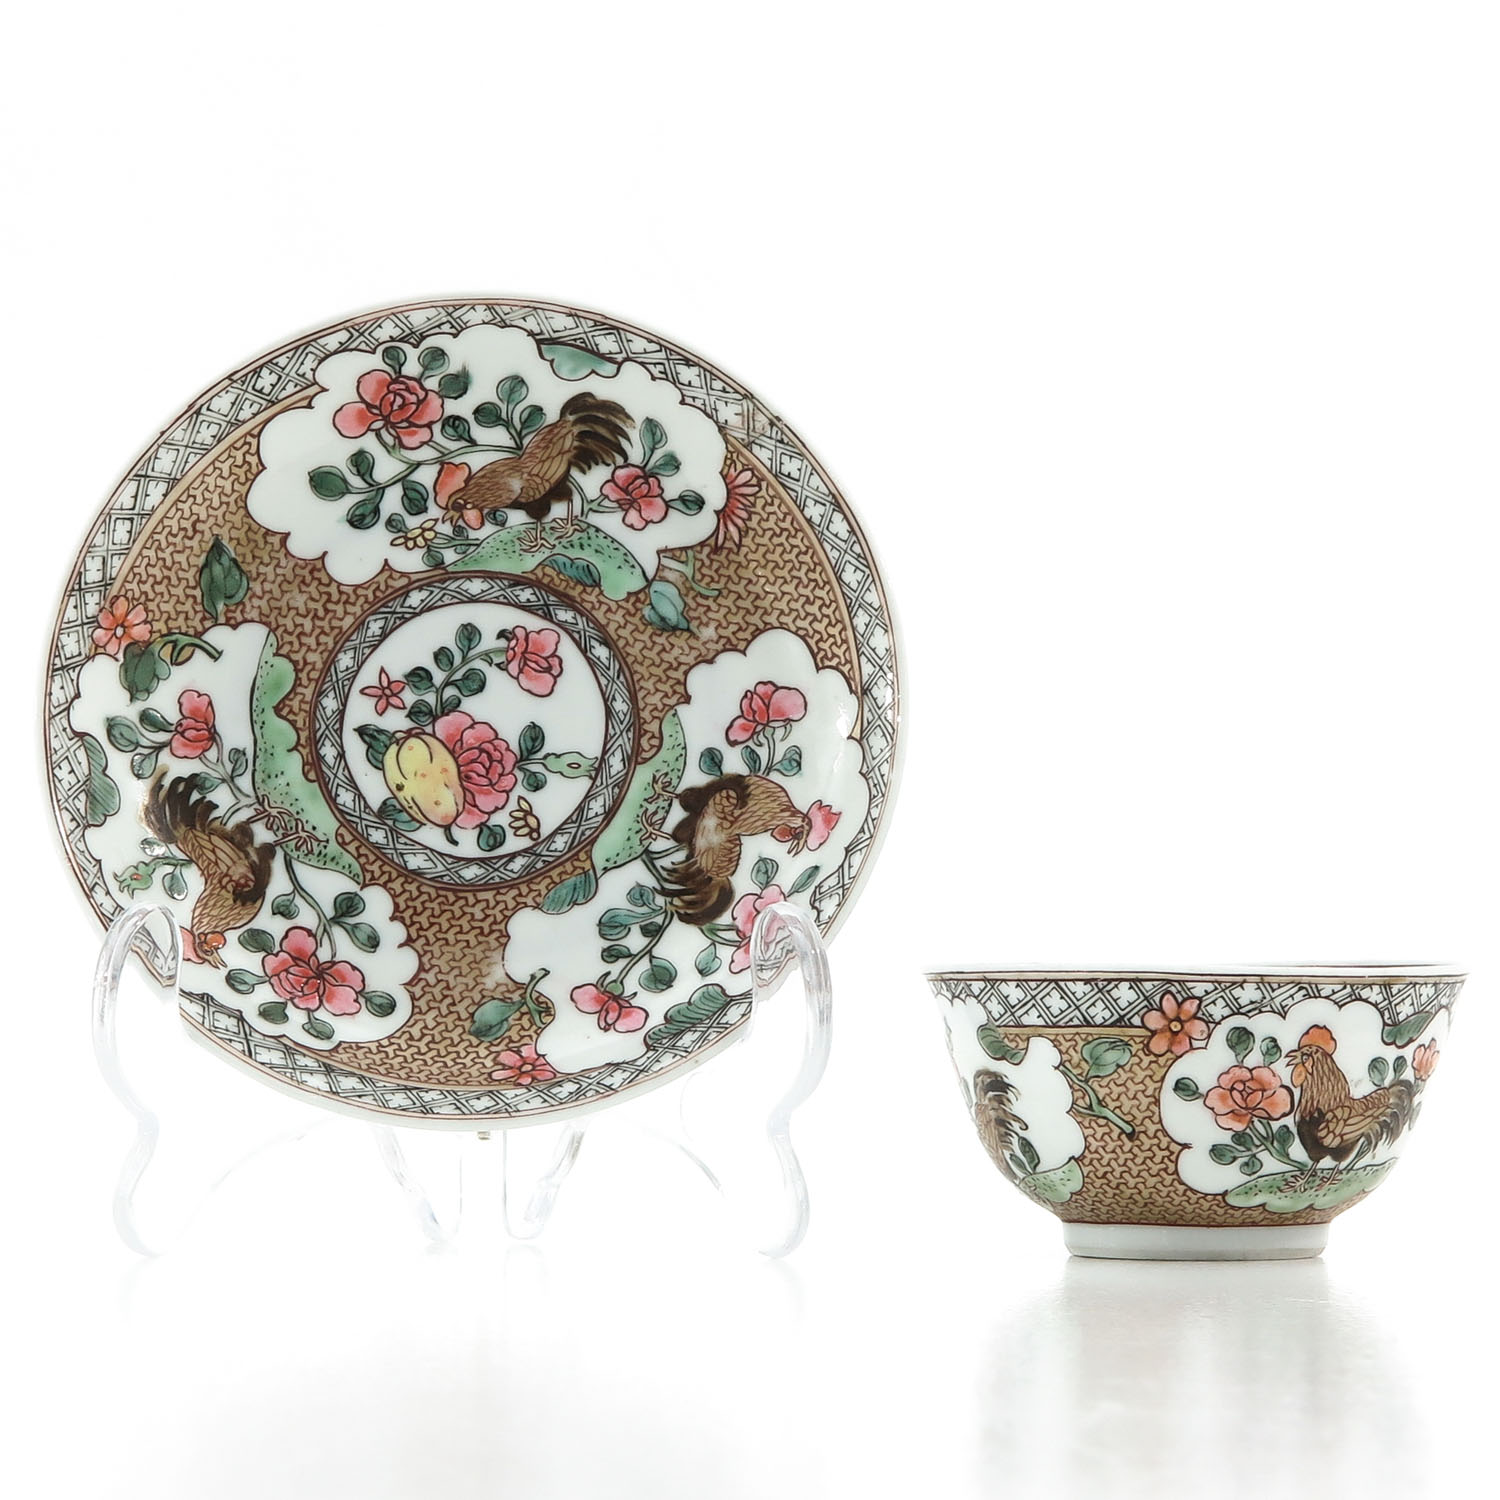 A Rooster Decor Cup and Saucer - Image 2 of 10